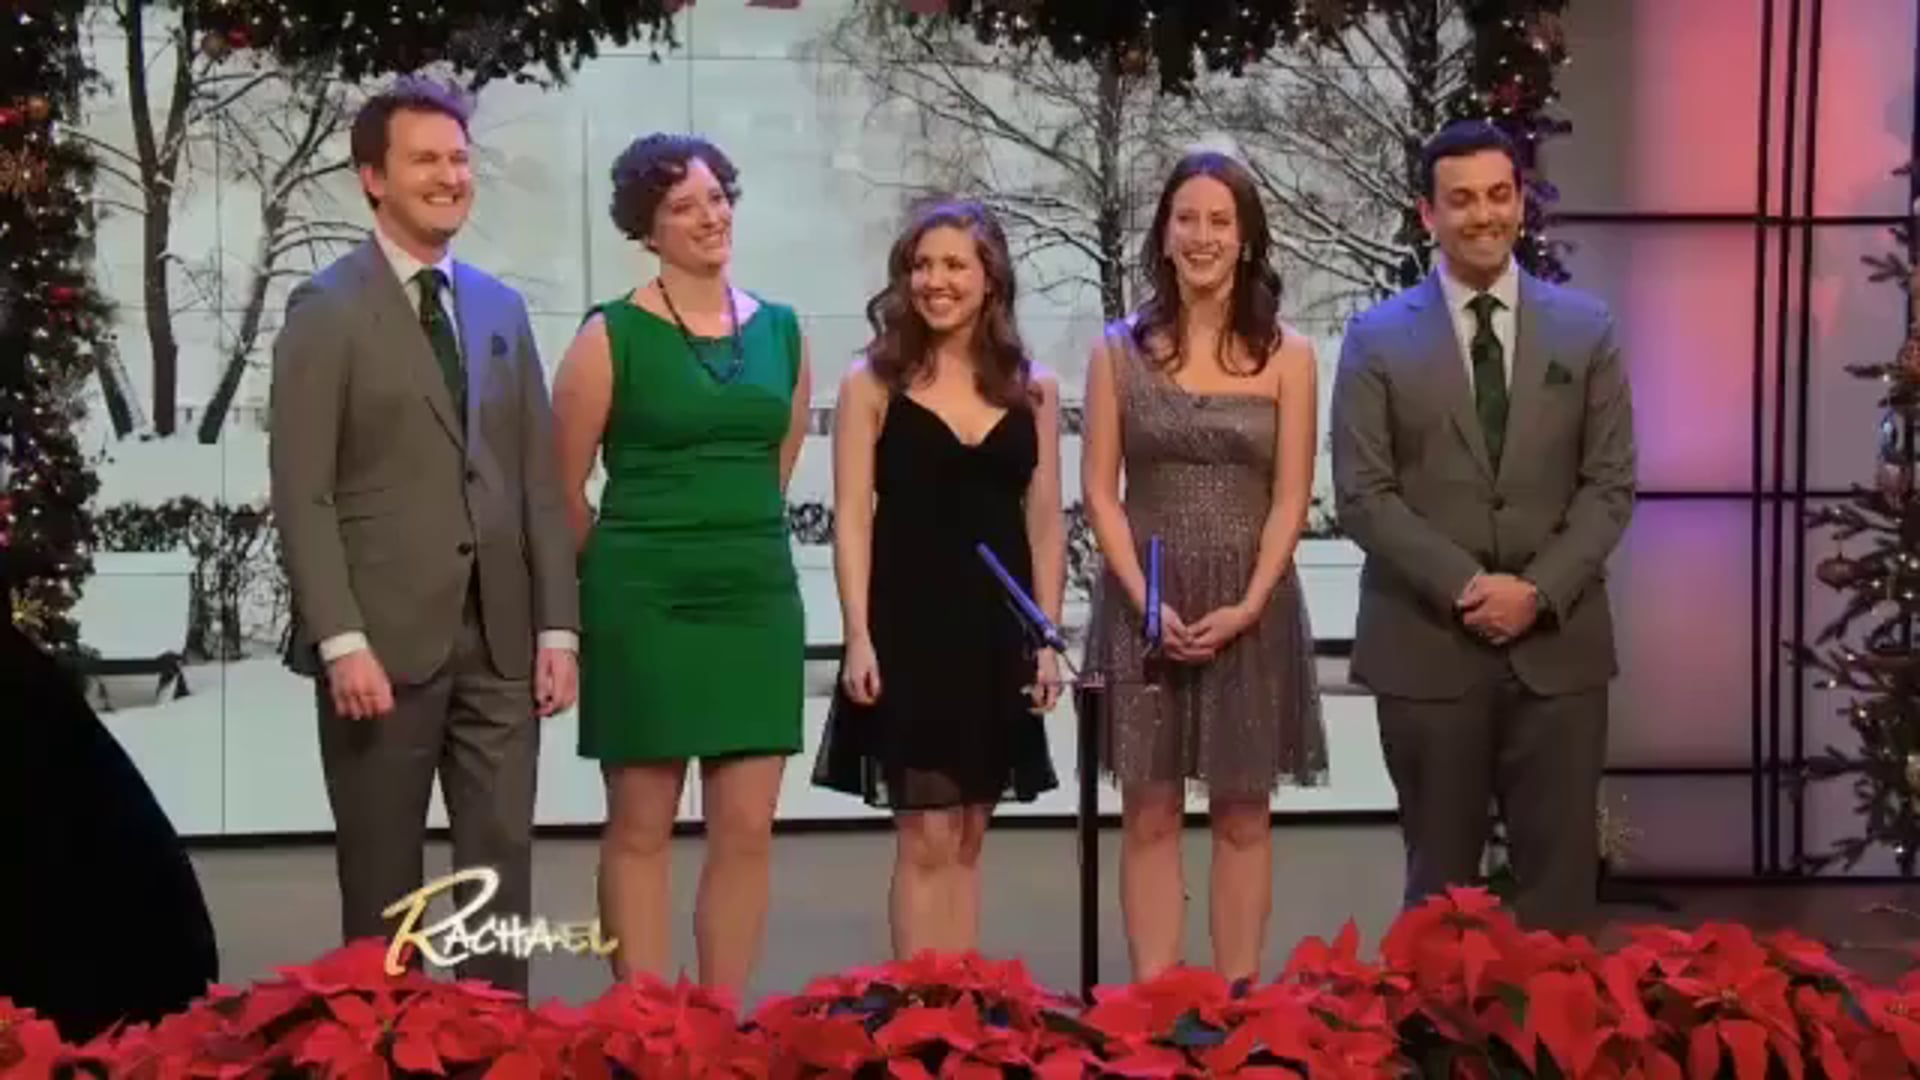 New York Holiday Singers on The Rachael Ray Show - 12/23/2012